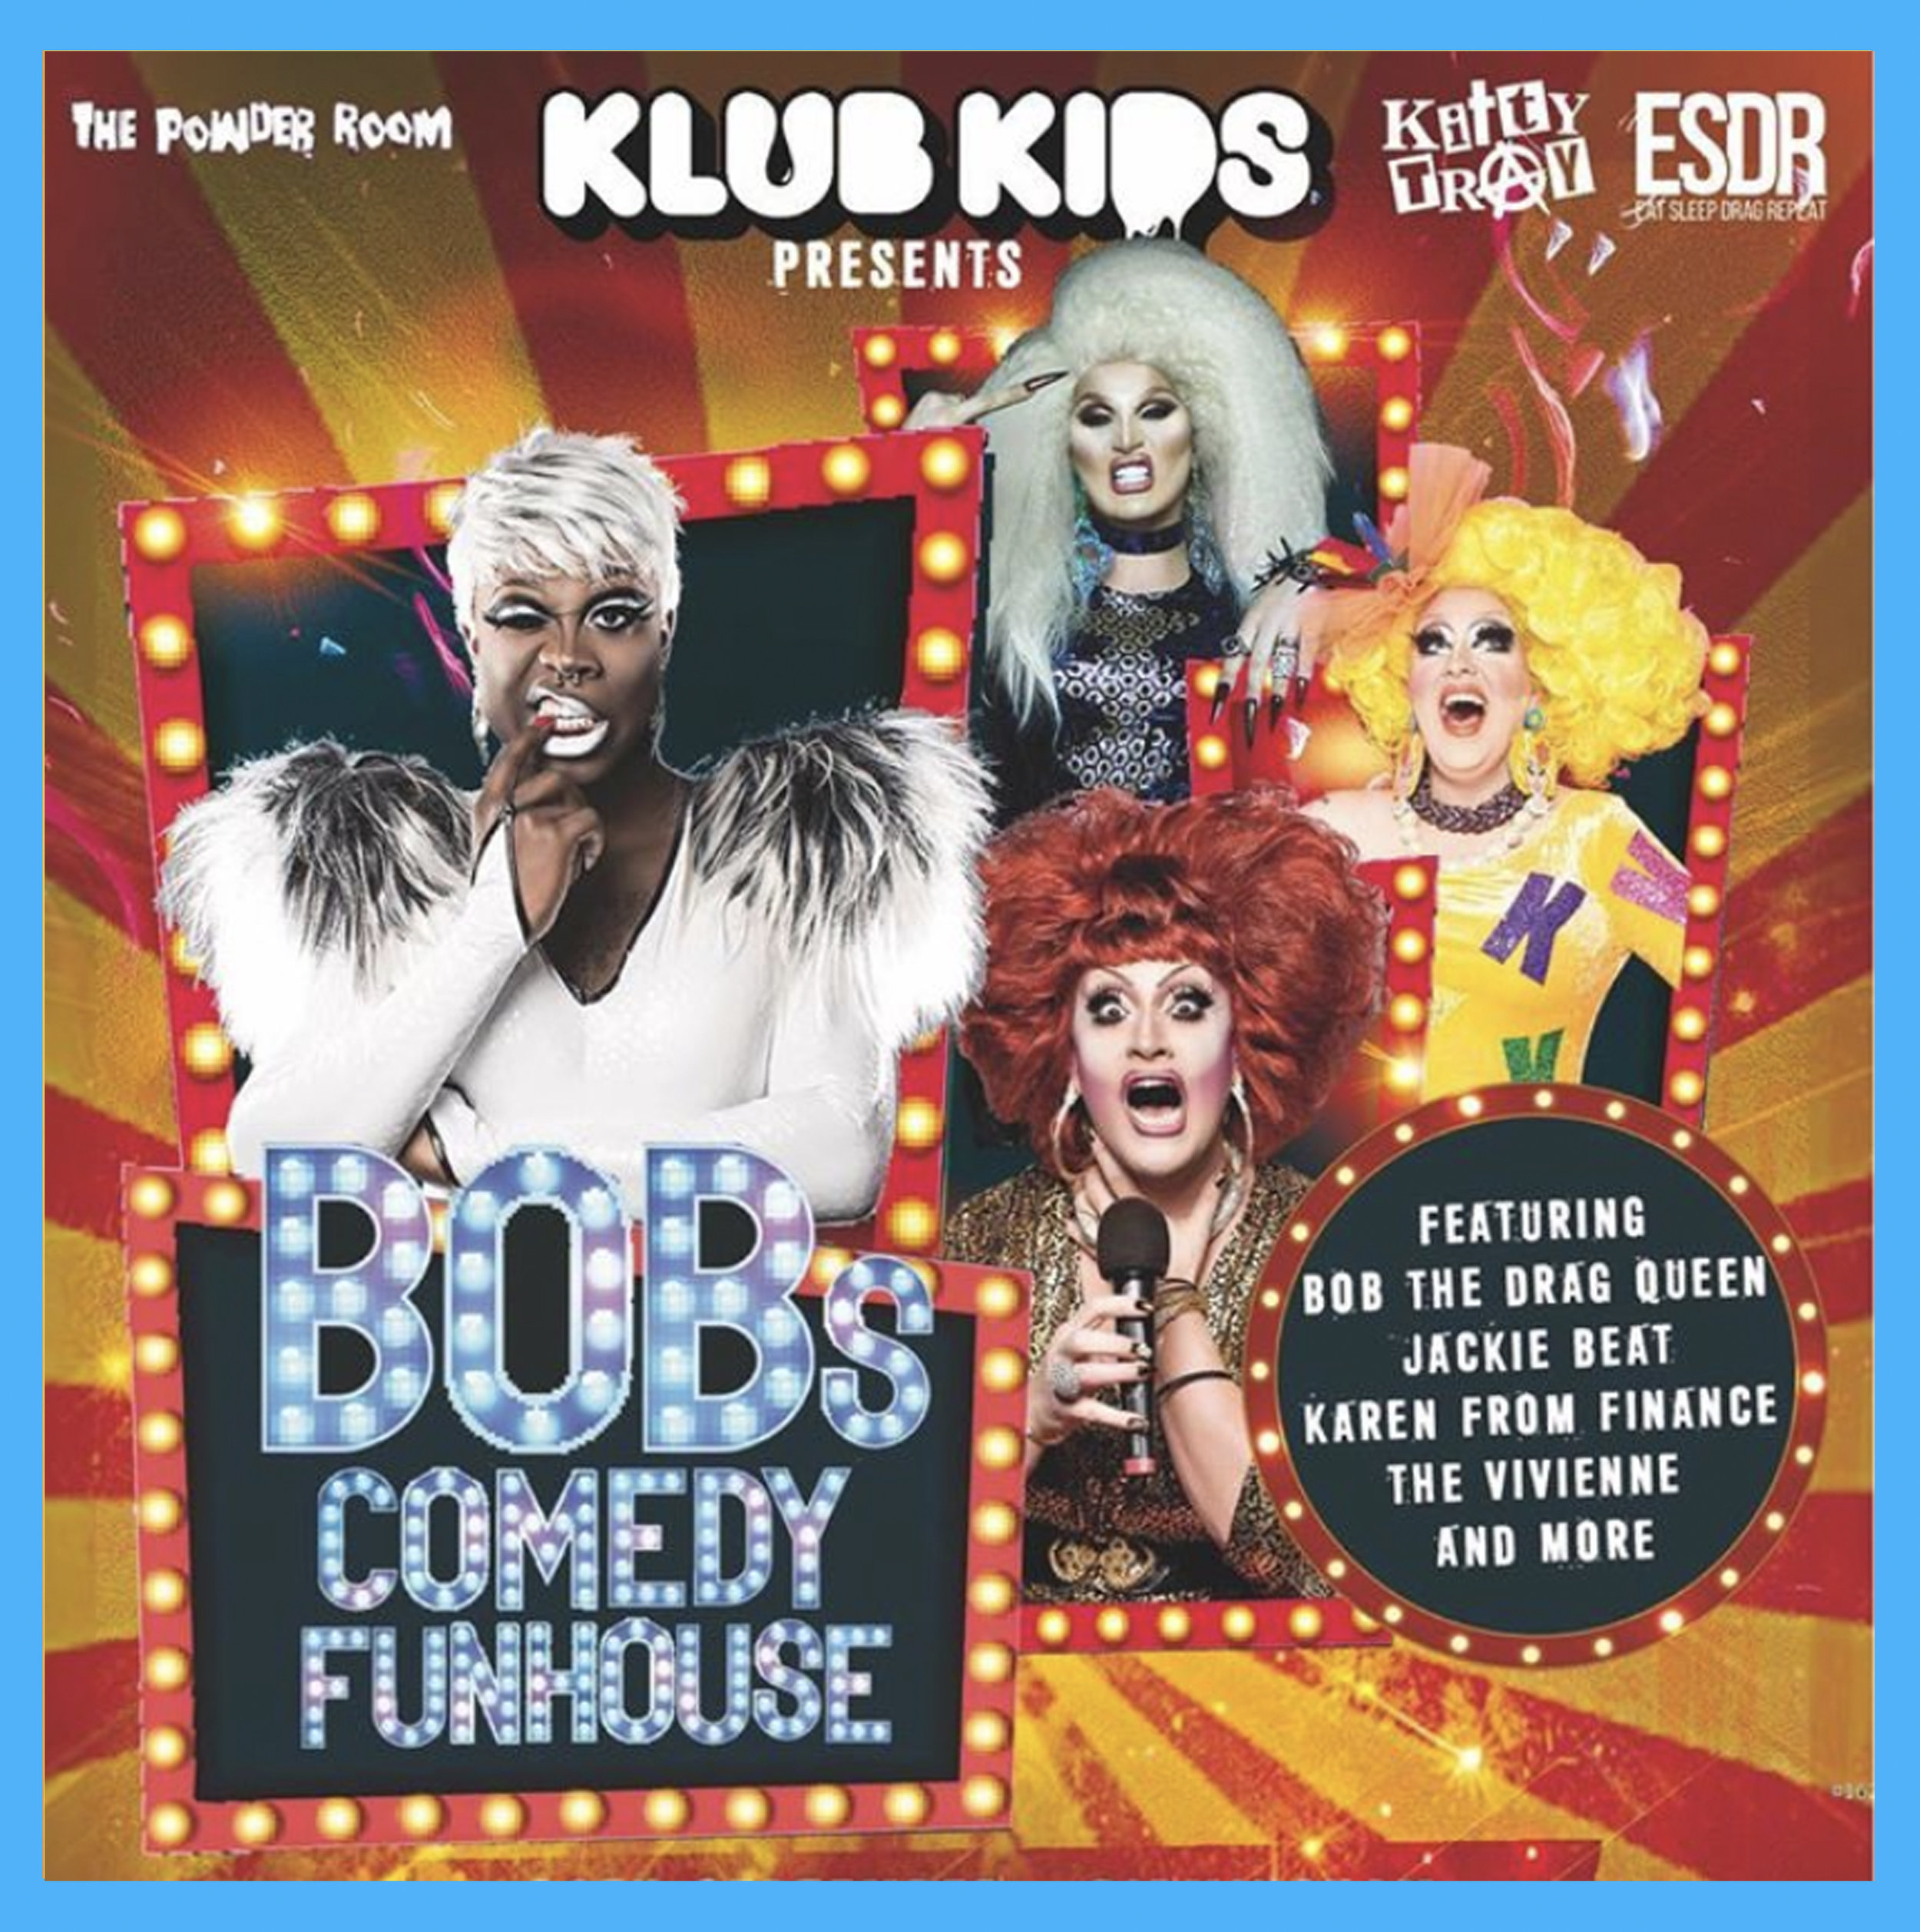 Sheffield, Uk - October 8th, 2019, 7:30PMThe LeadmillA comedy camp special show hosted and performances from Bob The Drag Queen, plus special performances from comedy legend Jackie Beat, Karen from Finance and Liverpool drag legend The Vivienne.Expect a show full of side splitting humour and some funhouse klub kids drama.